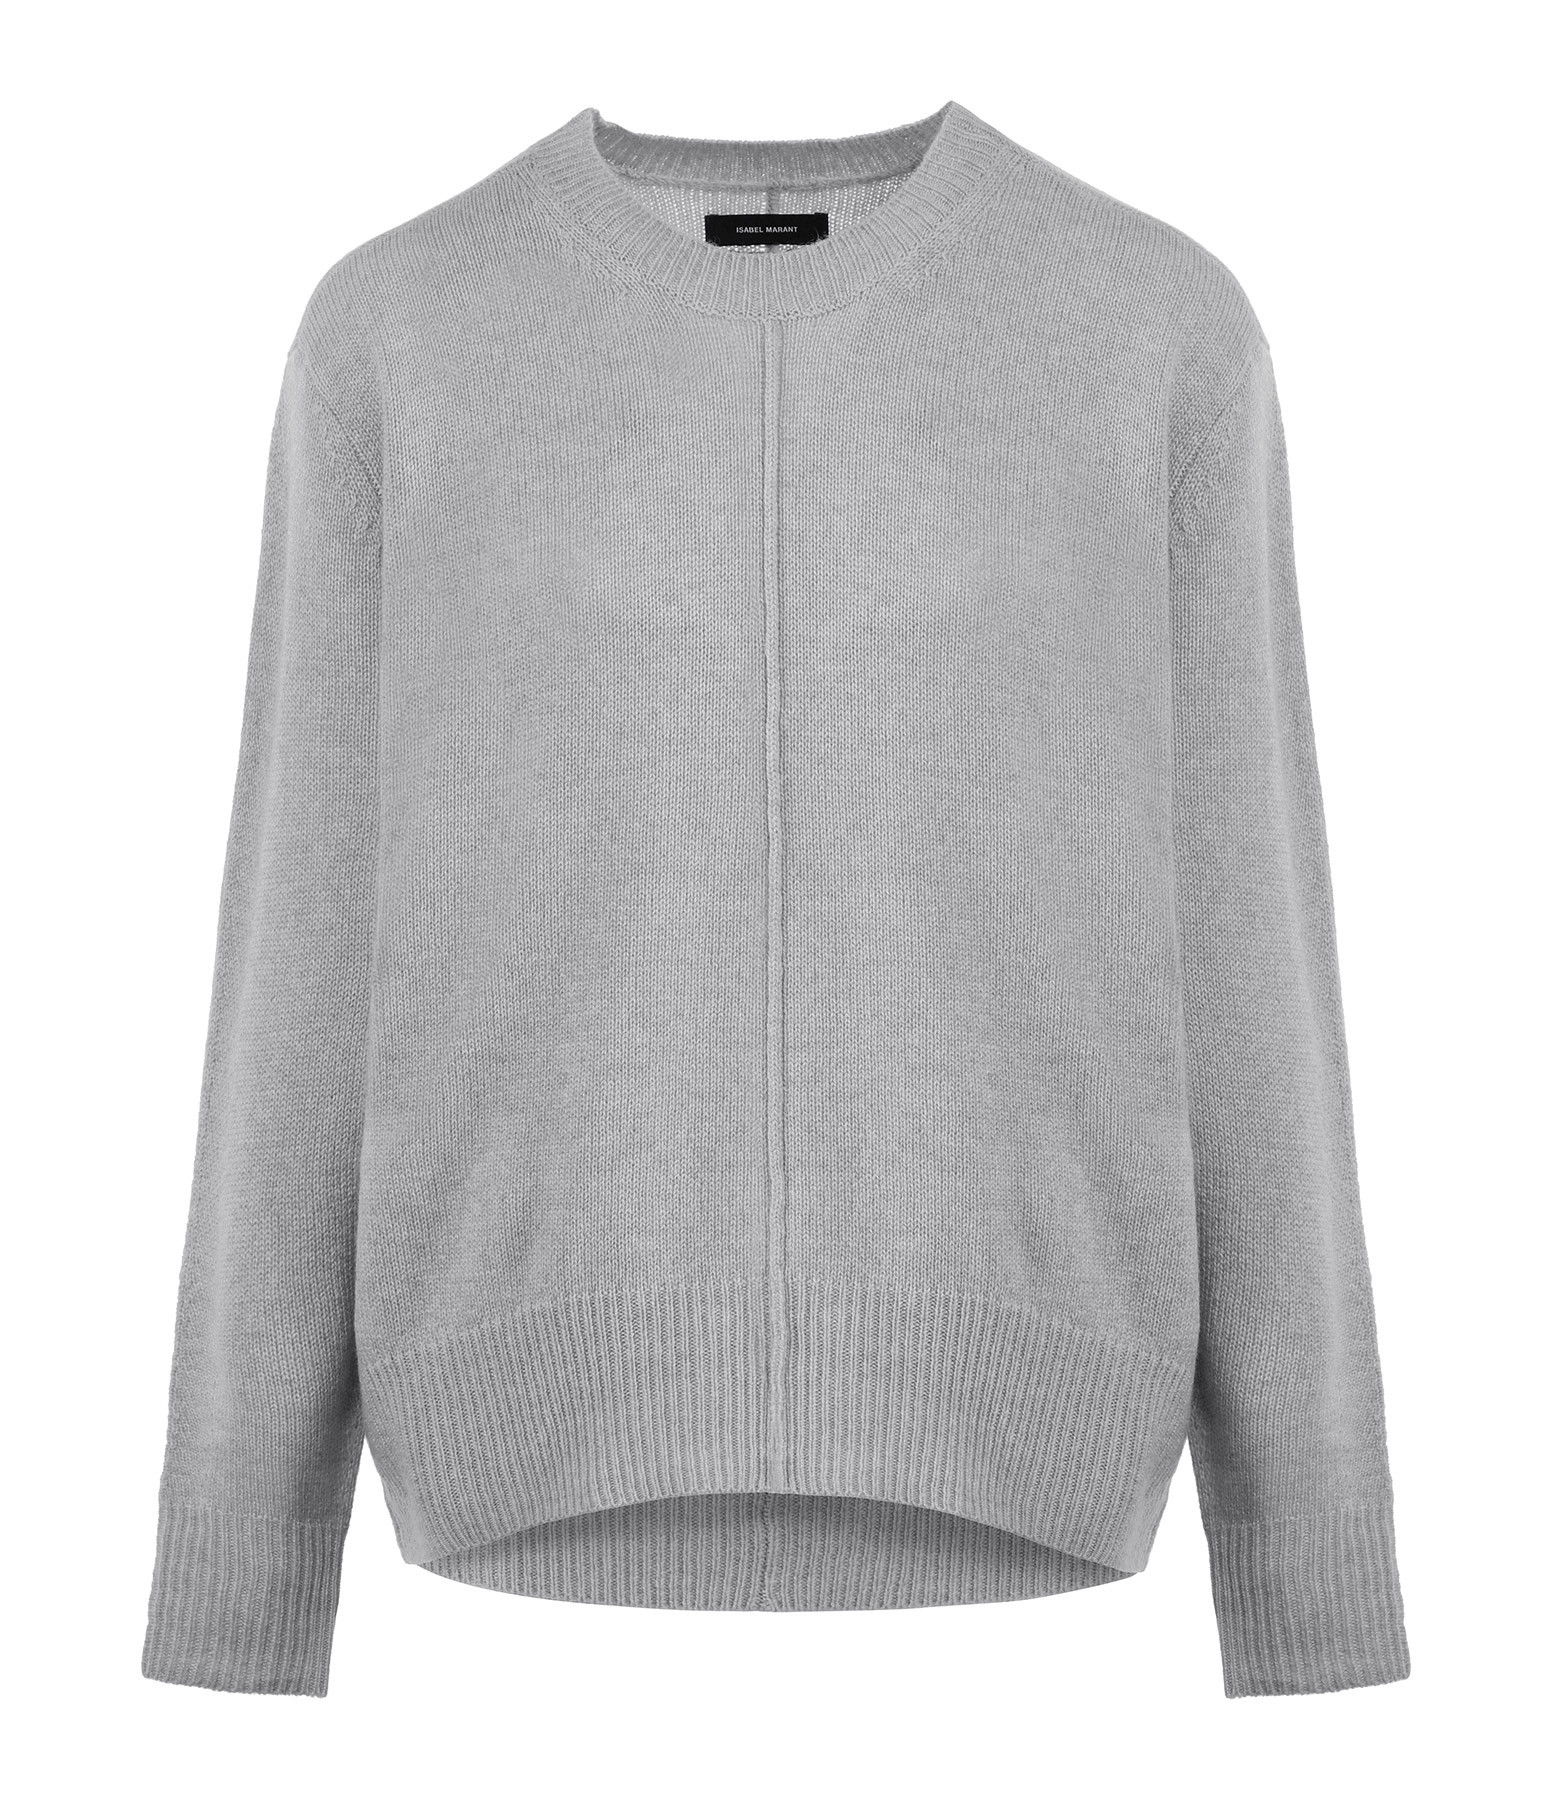 ISABEL MARANT - Pull Dave Soie Gris